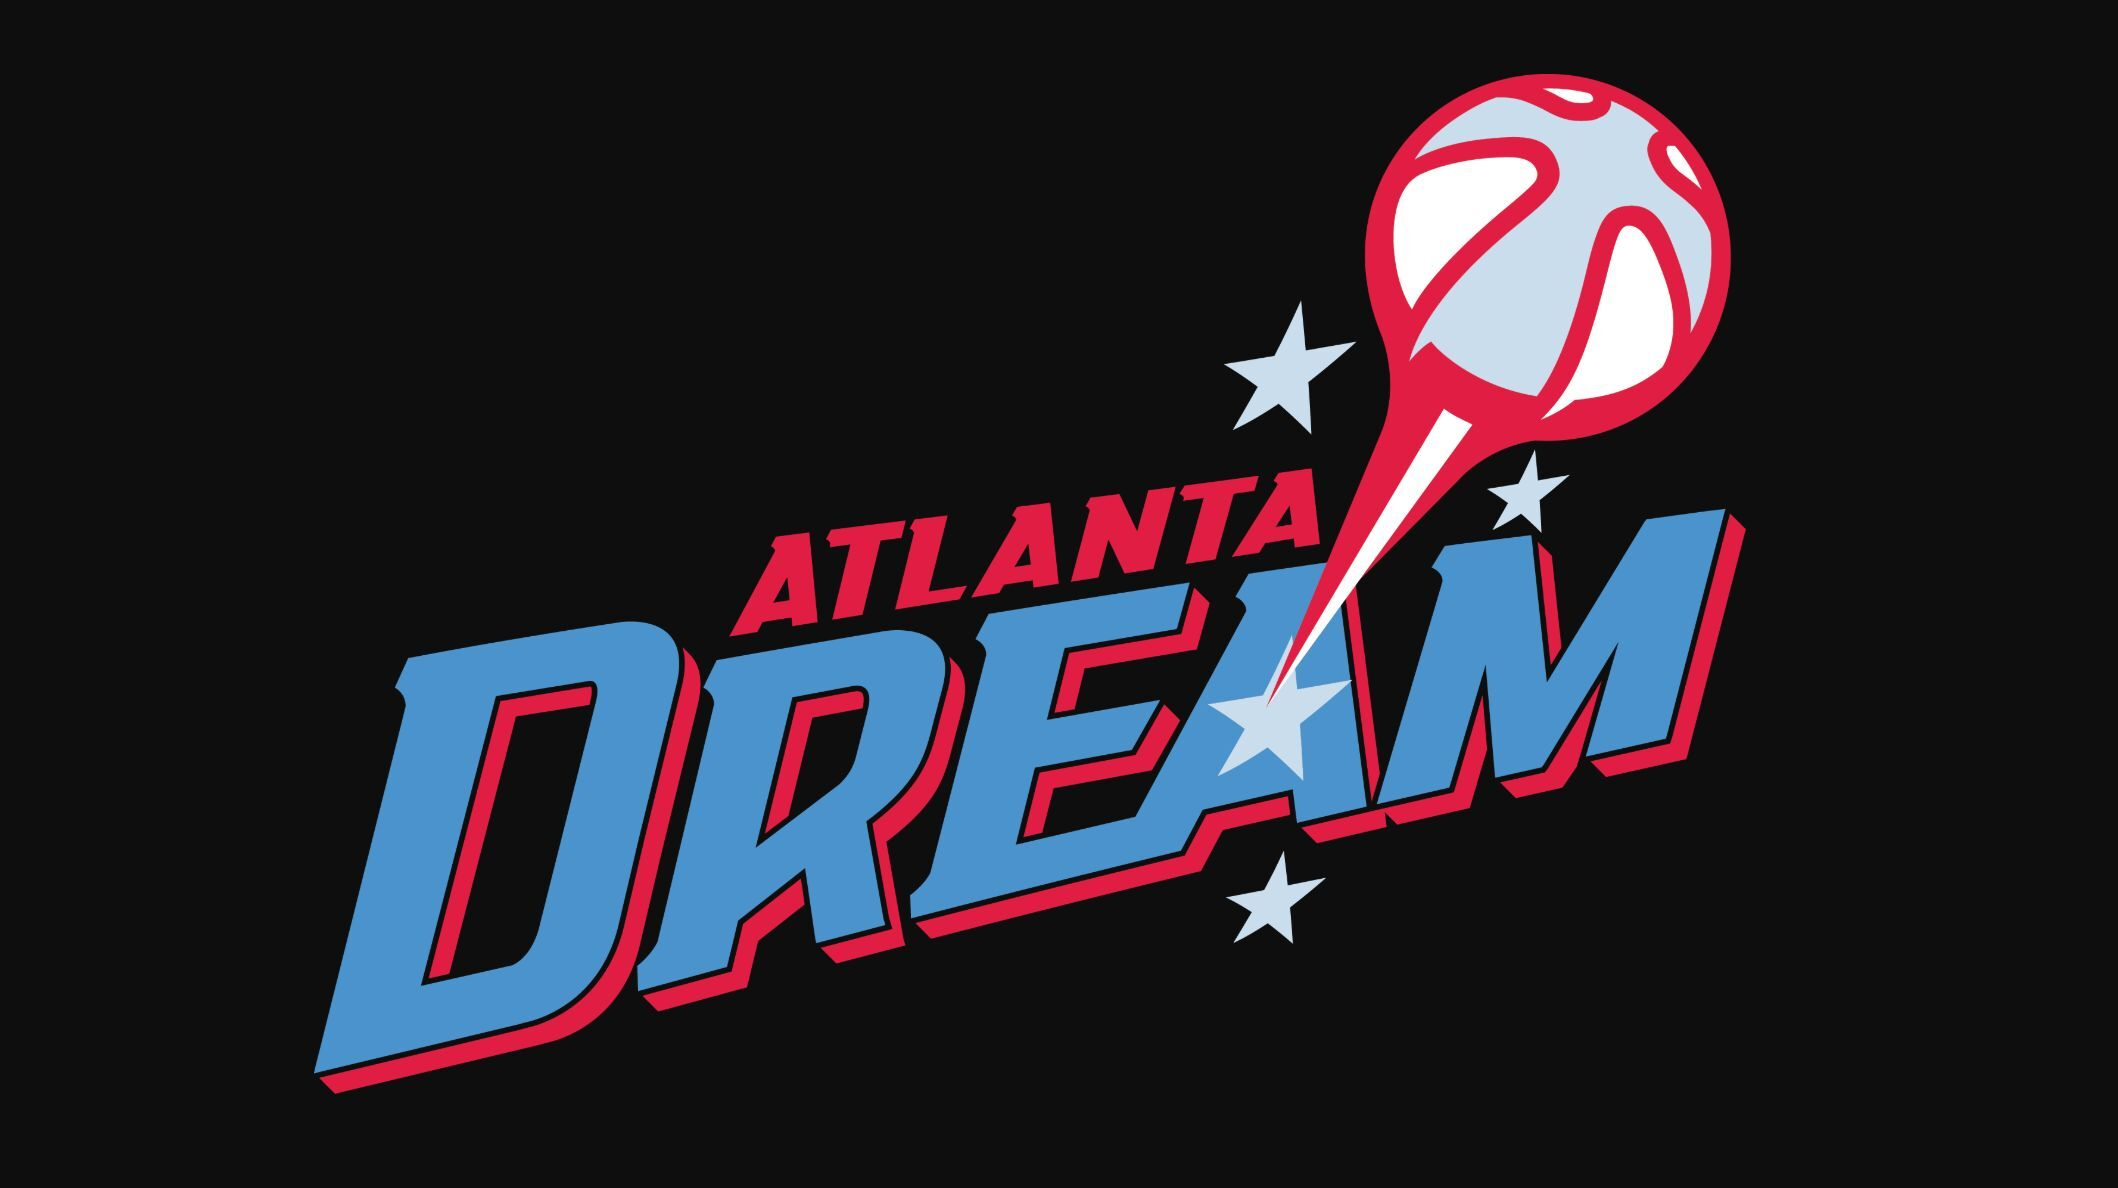 Former Hawks executive joins Atlanta Dream front office